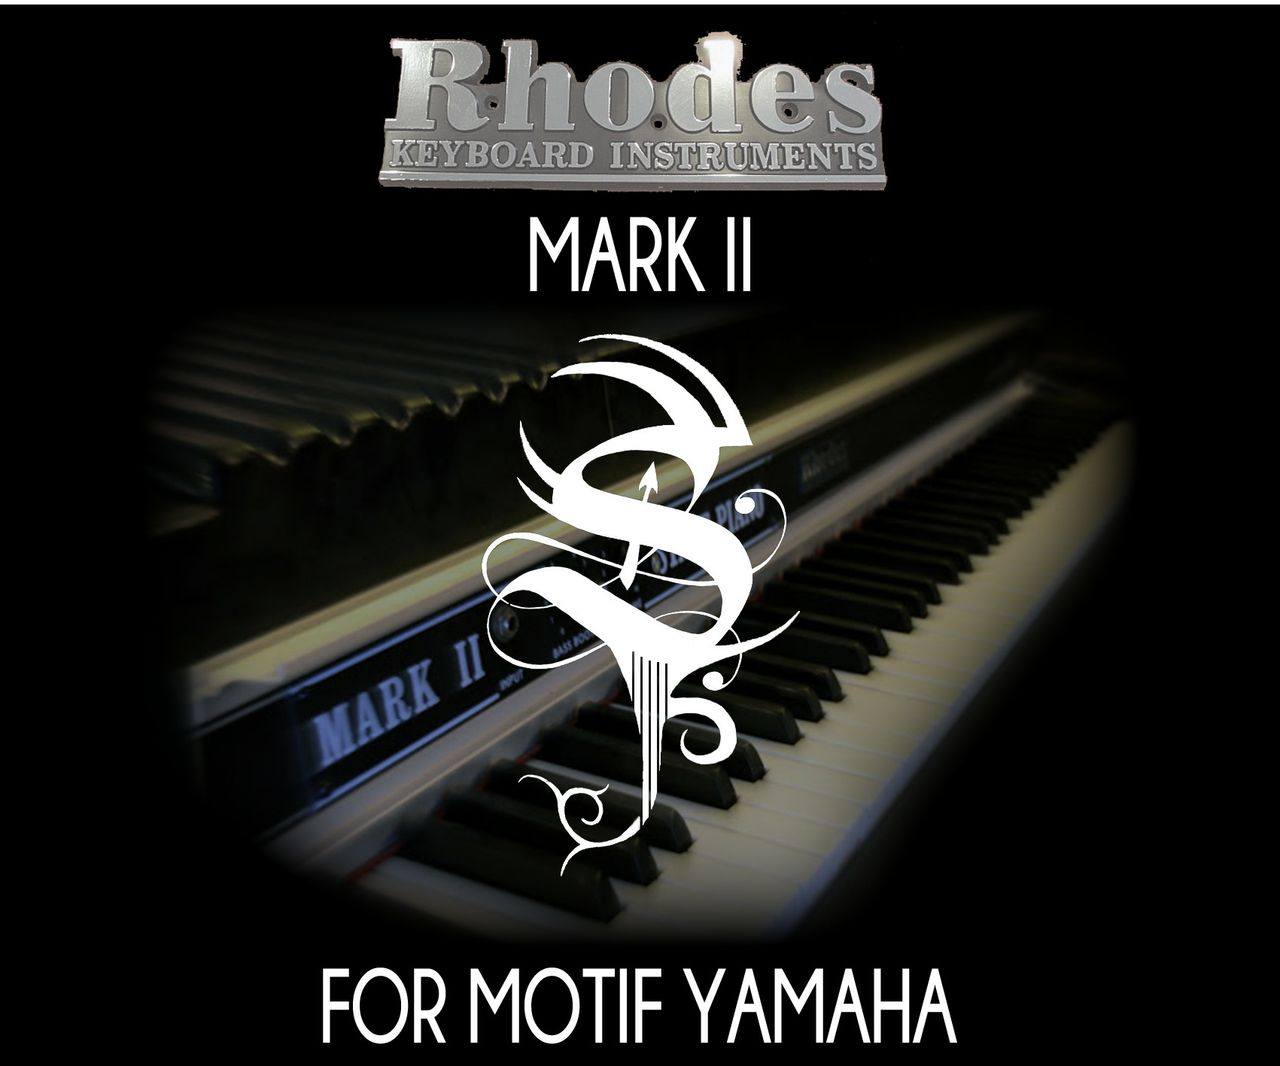 Rhodes Mark II for Motif XS v1.1